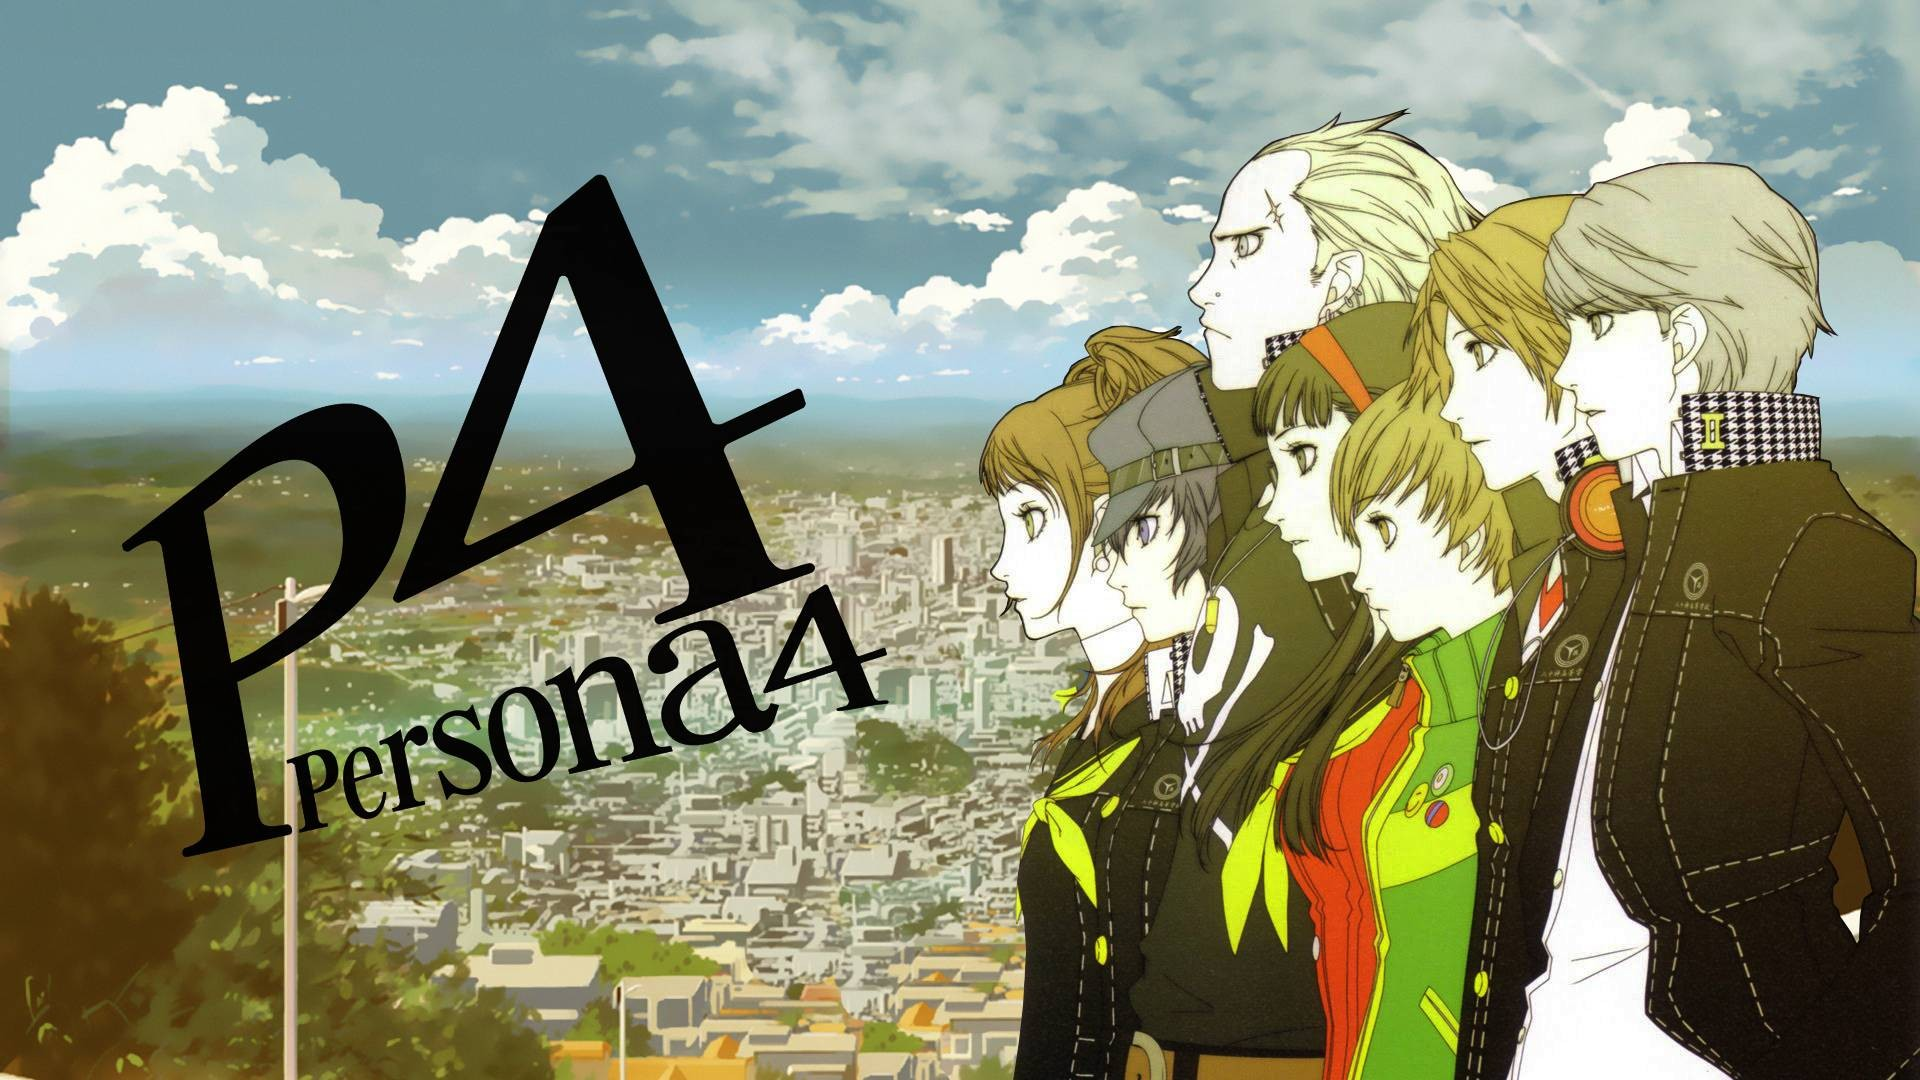 Persona 4 golden guide download